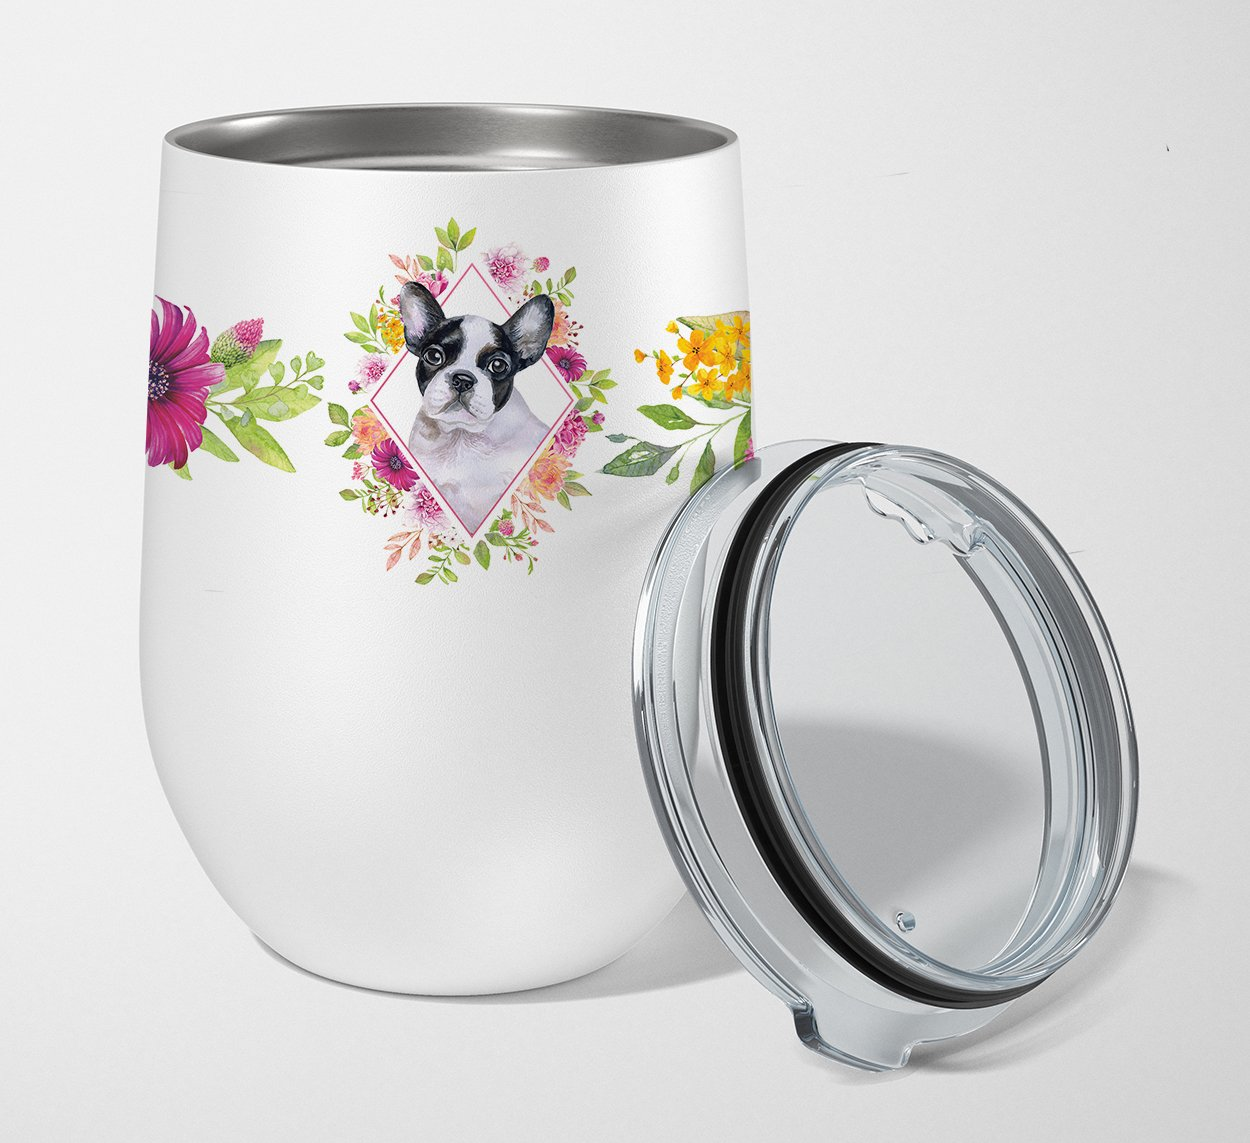 French Bulldog Pink Flowers Stainless Steel 12 oz Stemless Wine Glass CK4143TBL12 by Caroline's Treasures